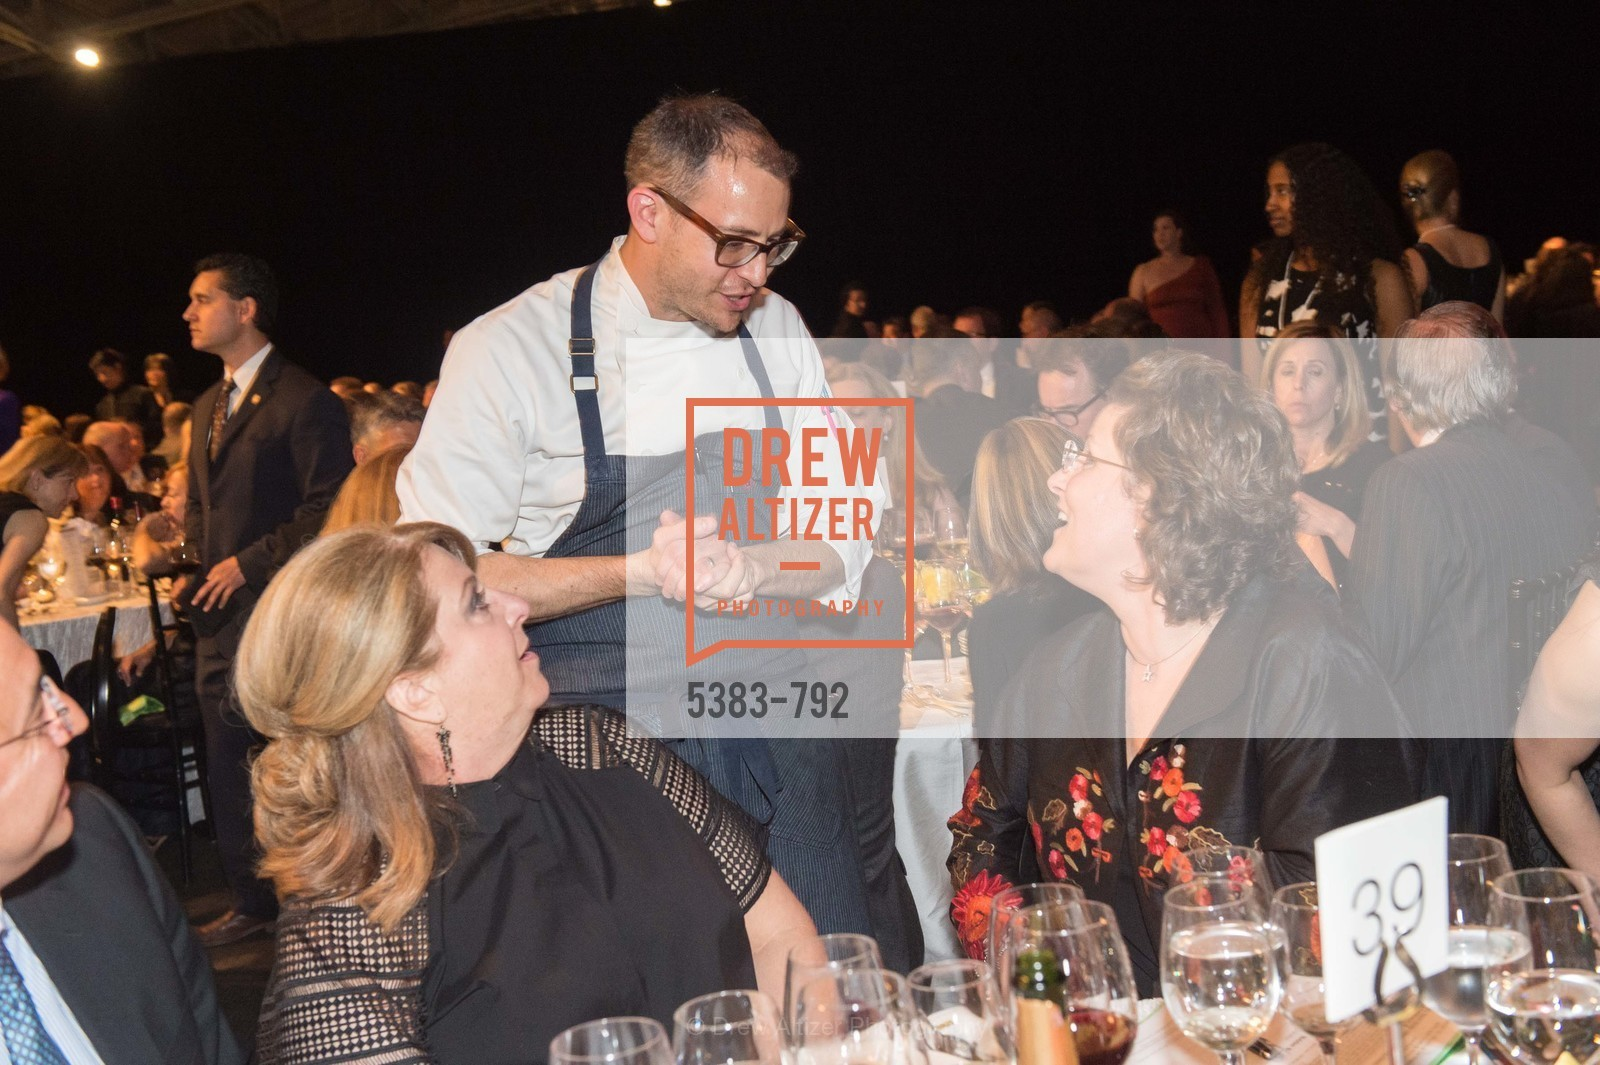 Diane Pellicione, Susan Sangiocomo, MEALS ON WHEELS OF SAN FRANCISCO'S 28th Annual Star Chefs and Vintners Gala, US, April 20th, 2015,Drew Altizer, Drew Altizer Photography, full-service agency, private events, San Francisco photographer, photographer california